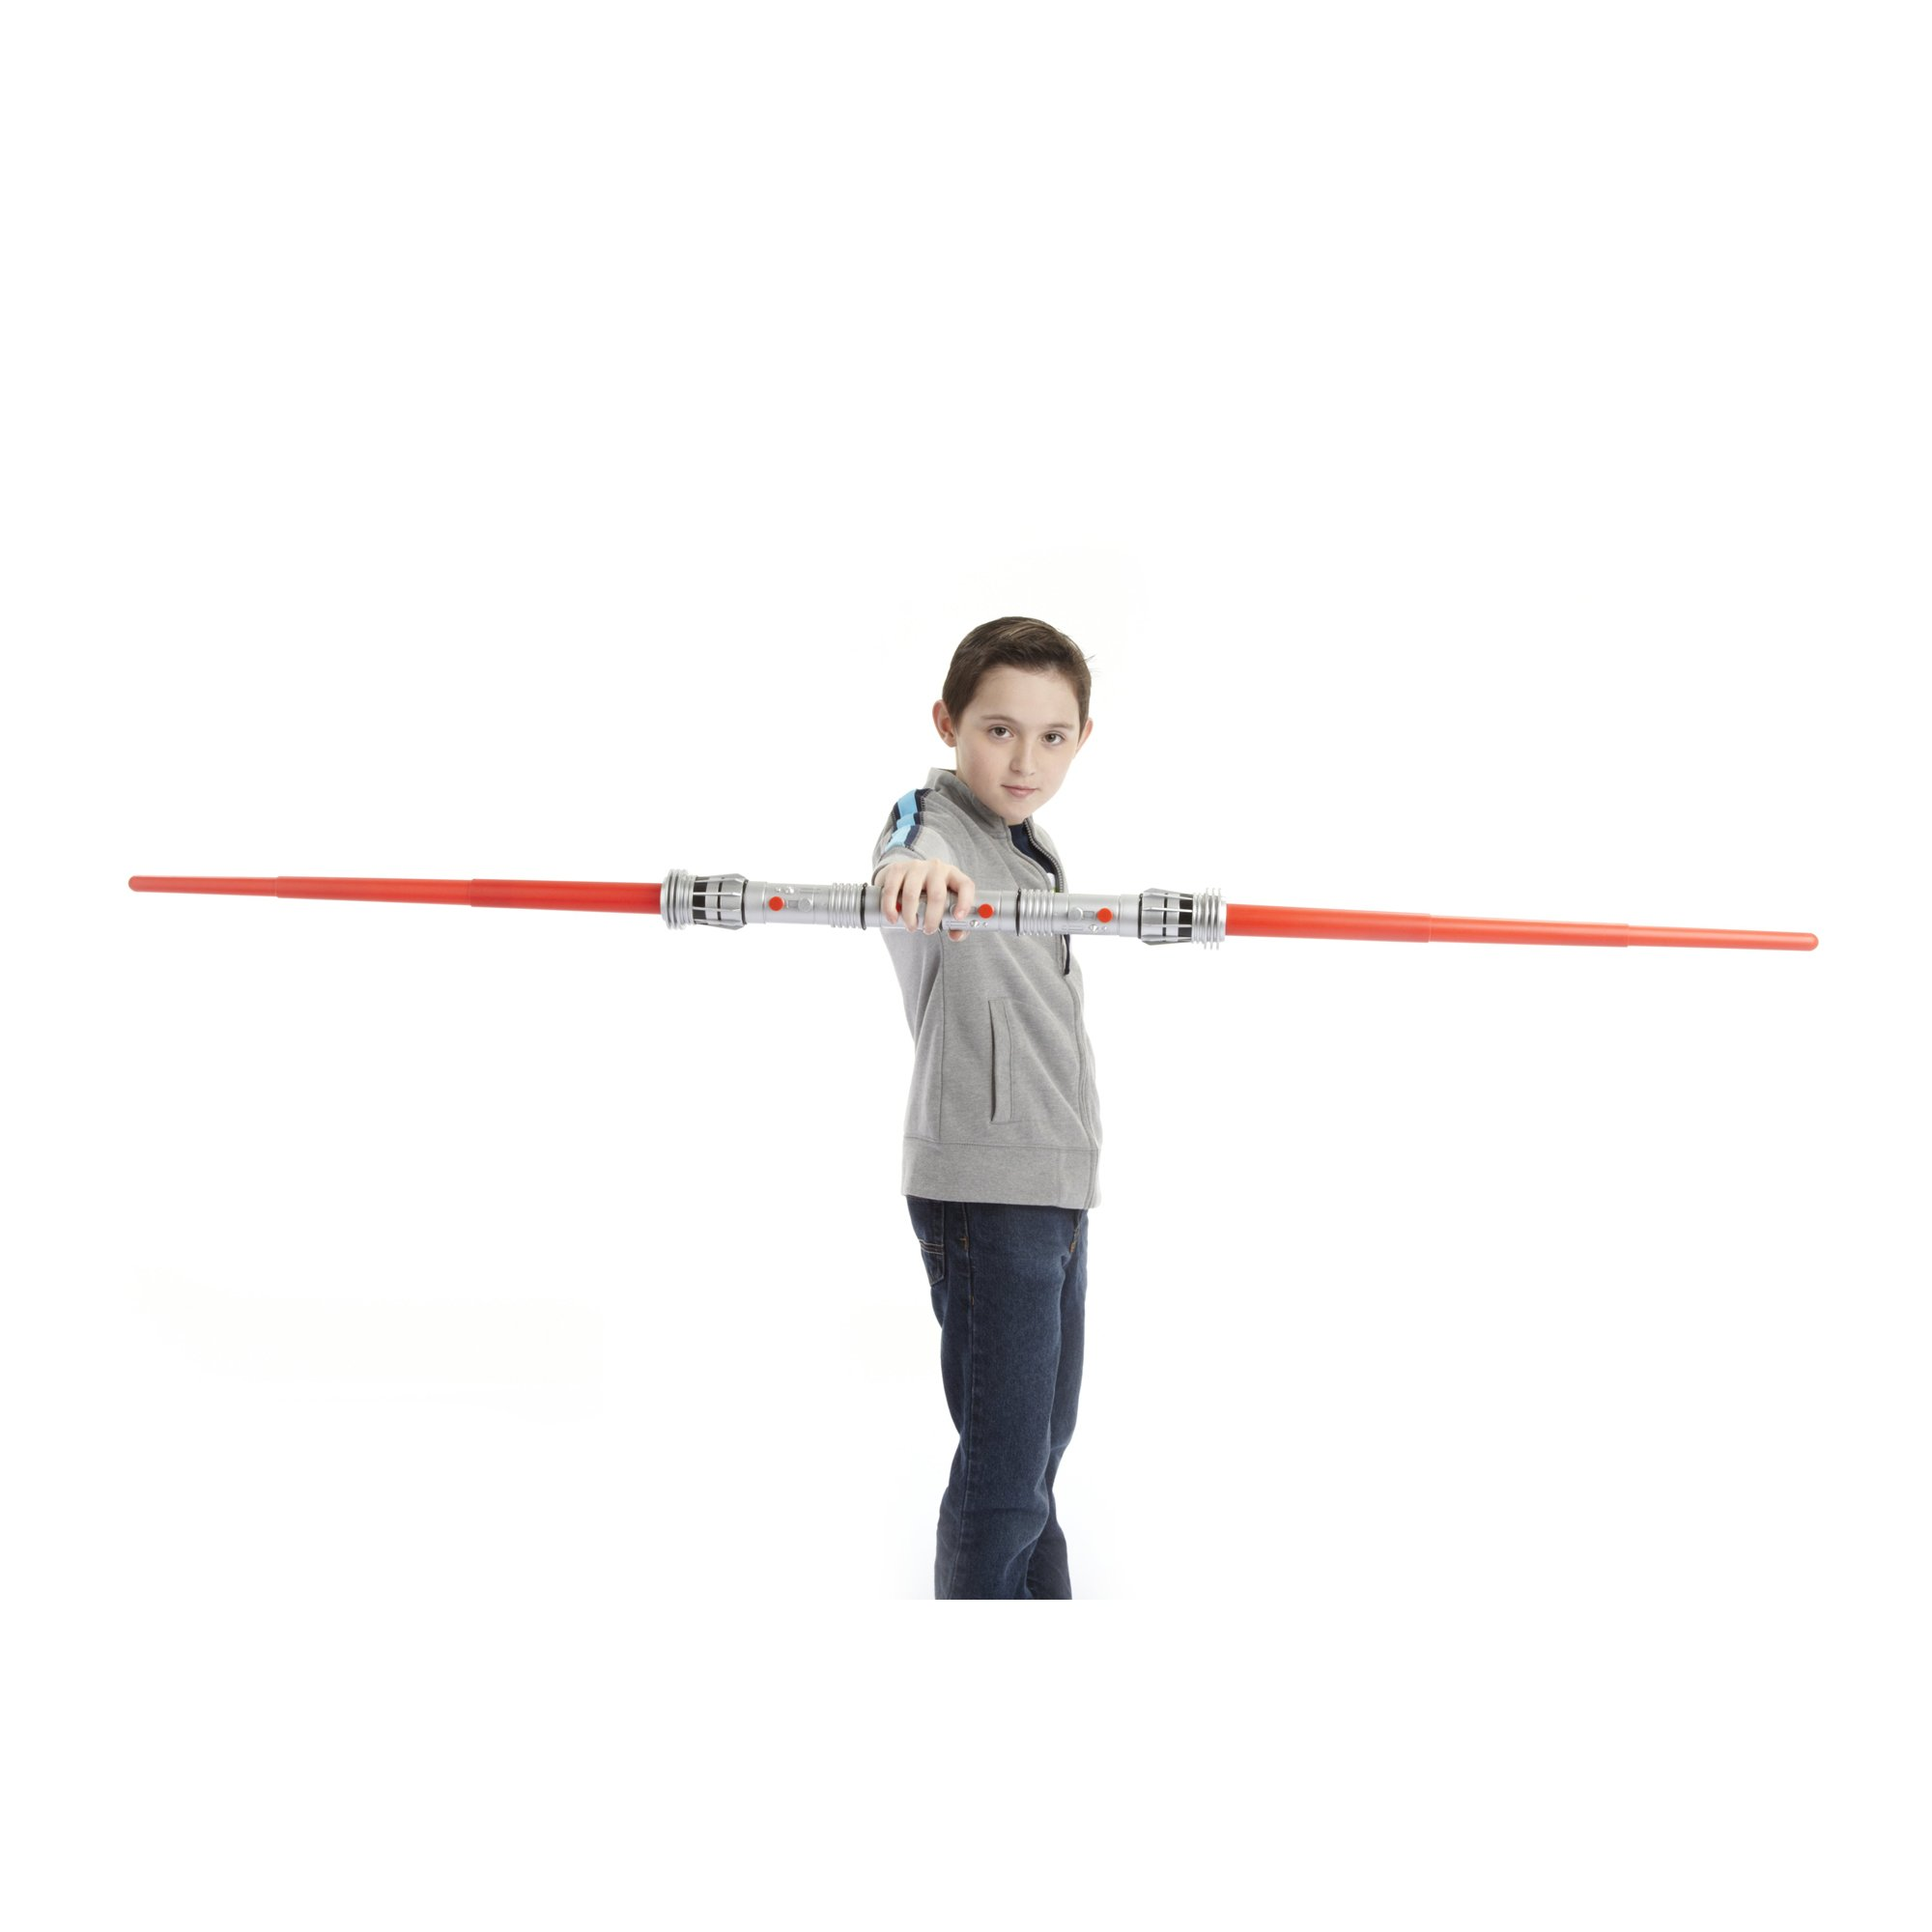 Star Wars Darth Maul Double-Bladed Lightsaber Toy by Star Wars (Image #4)